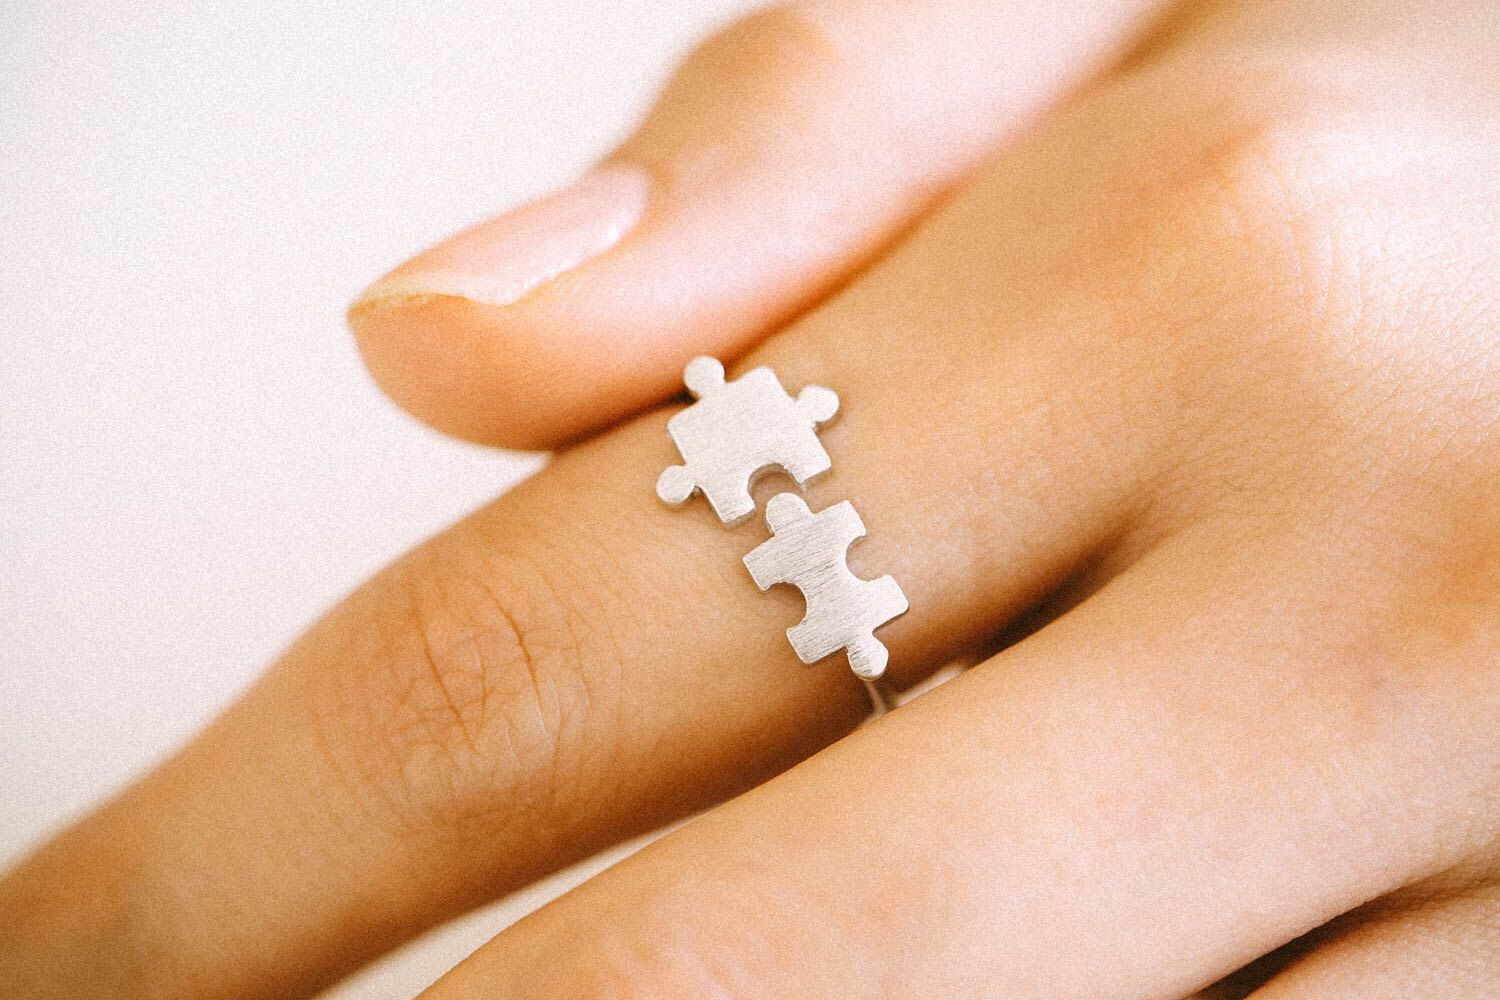 925 sterling Puzzle Ring,Silver ring,adjustable ring,free size ring,memory ring,puzzle pieces,Jigsaw Puzzle ring,men ring,women ring,ABC214 by comejew on Etsy https://www.etsy.com/listing/227654816/925-sterling-puzzle-ringsilver